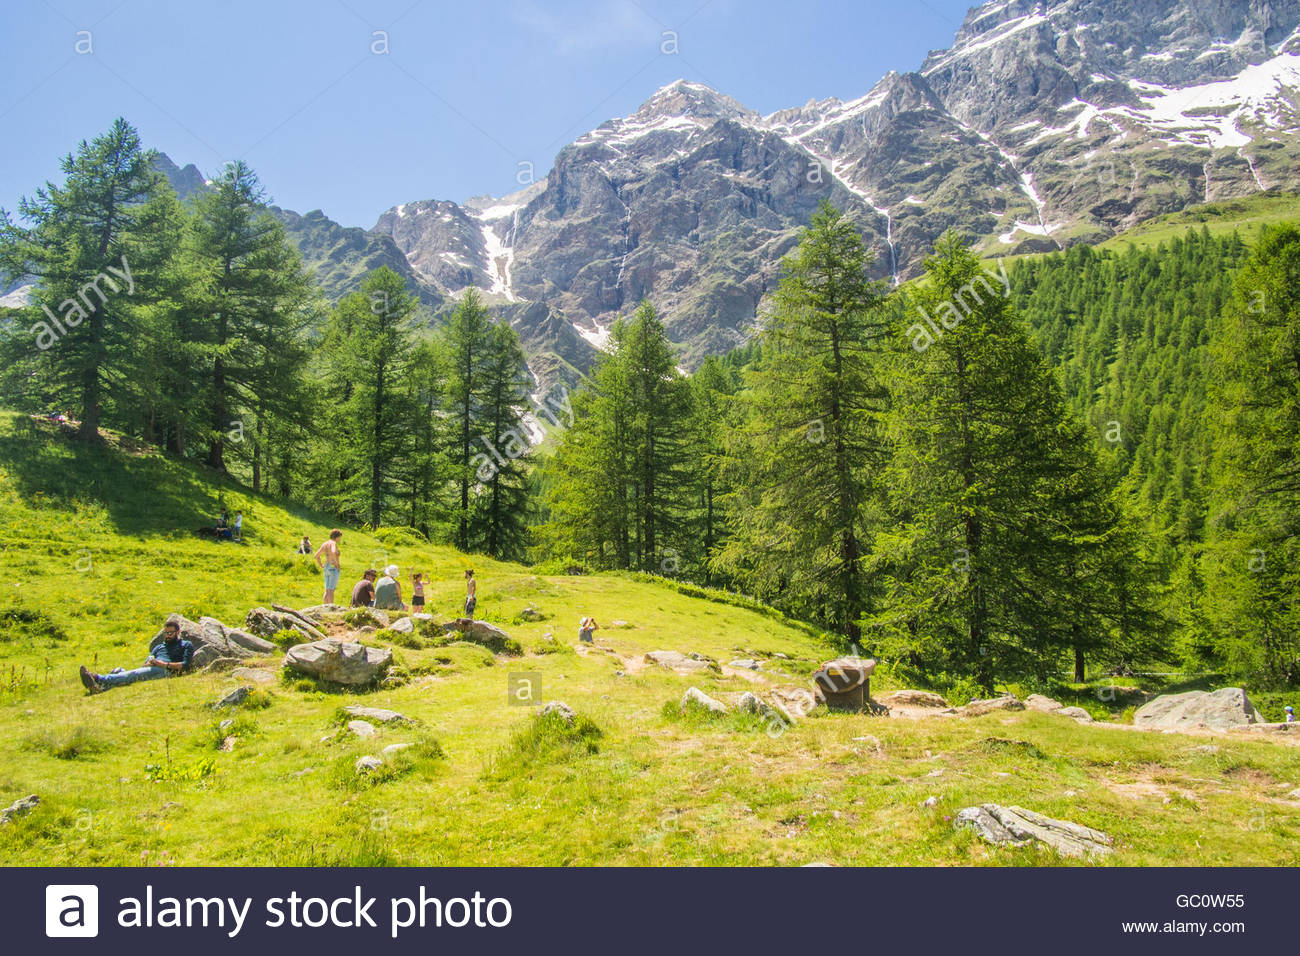 Beside Lago Blu (Lake Blue), Aosta Valley, Italy. - Stock Image